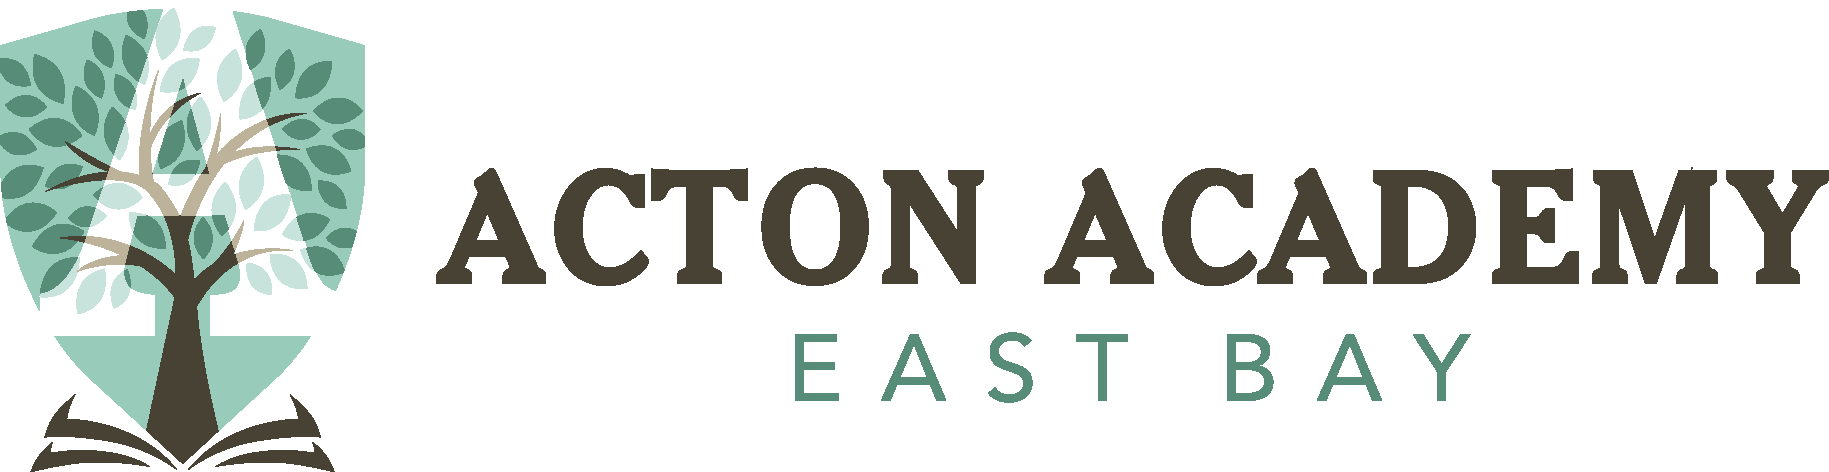 Acton Academy East Bay Logo